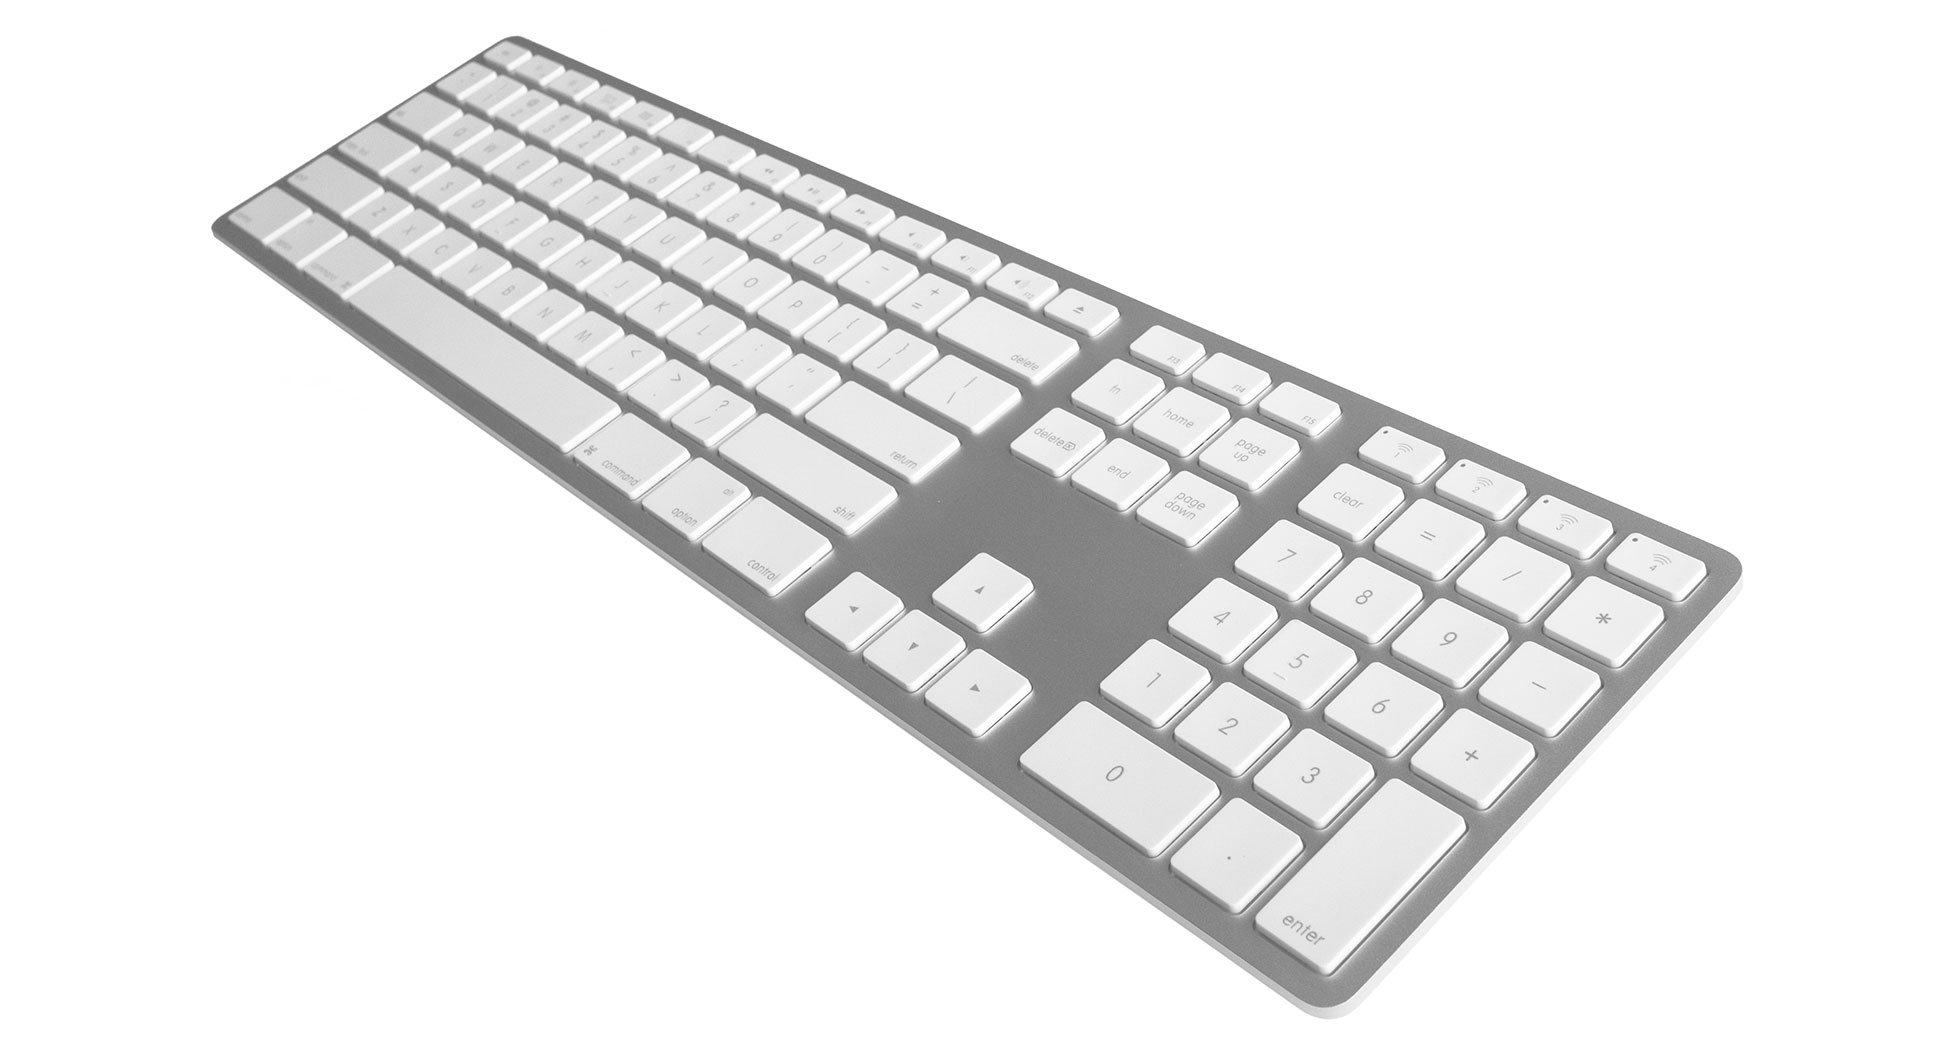 Matias Wireless Aluminum Keyboard review, a great concept but with quality issues